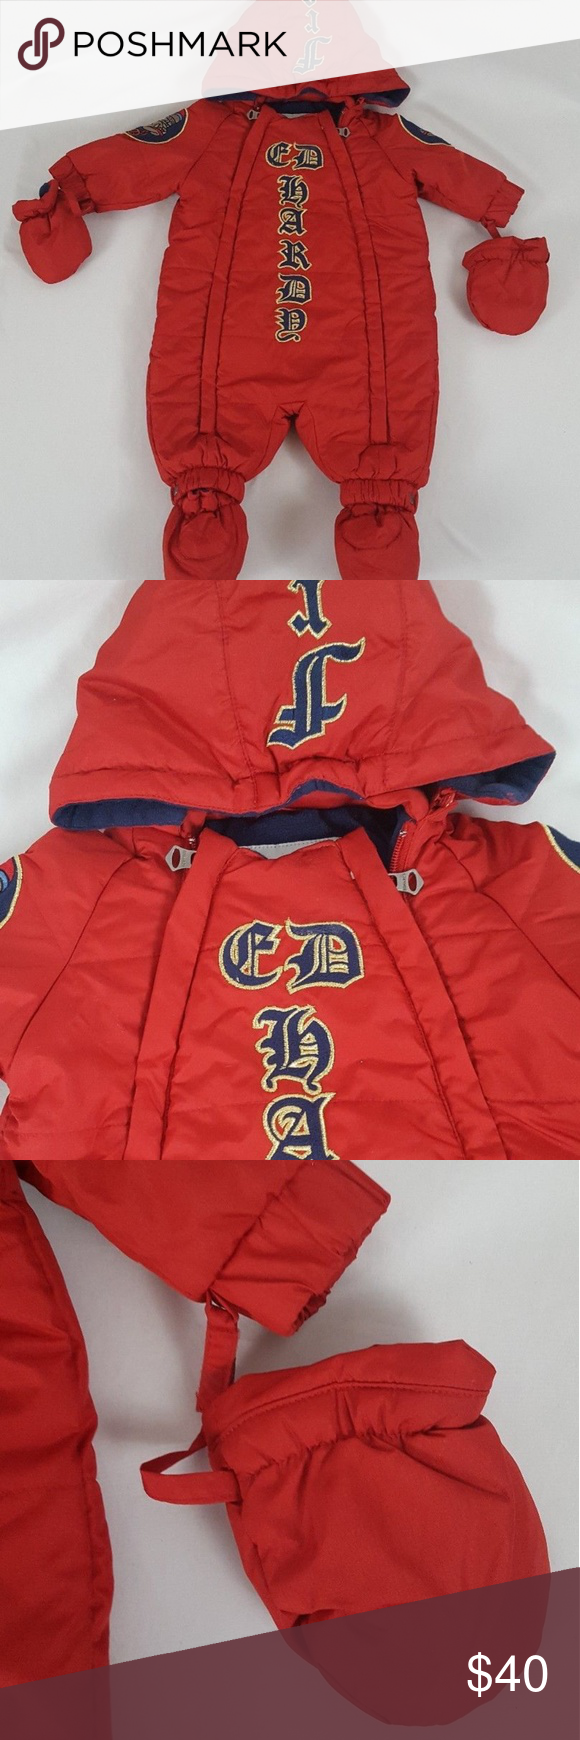 5fcd41505be9 Ed Hardy Christian Audigier Baby Coat Snowsuit Rare Ed Hardy ...